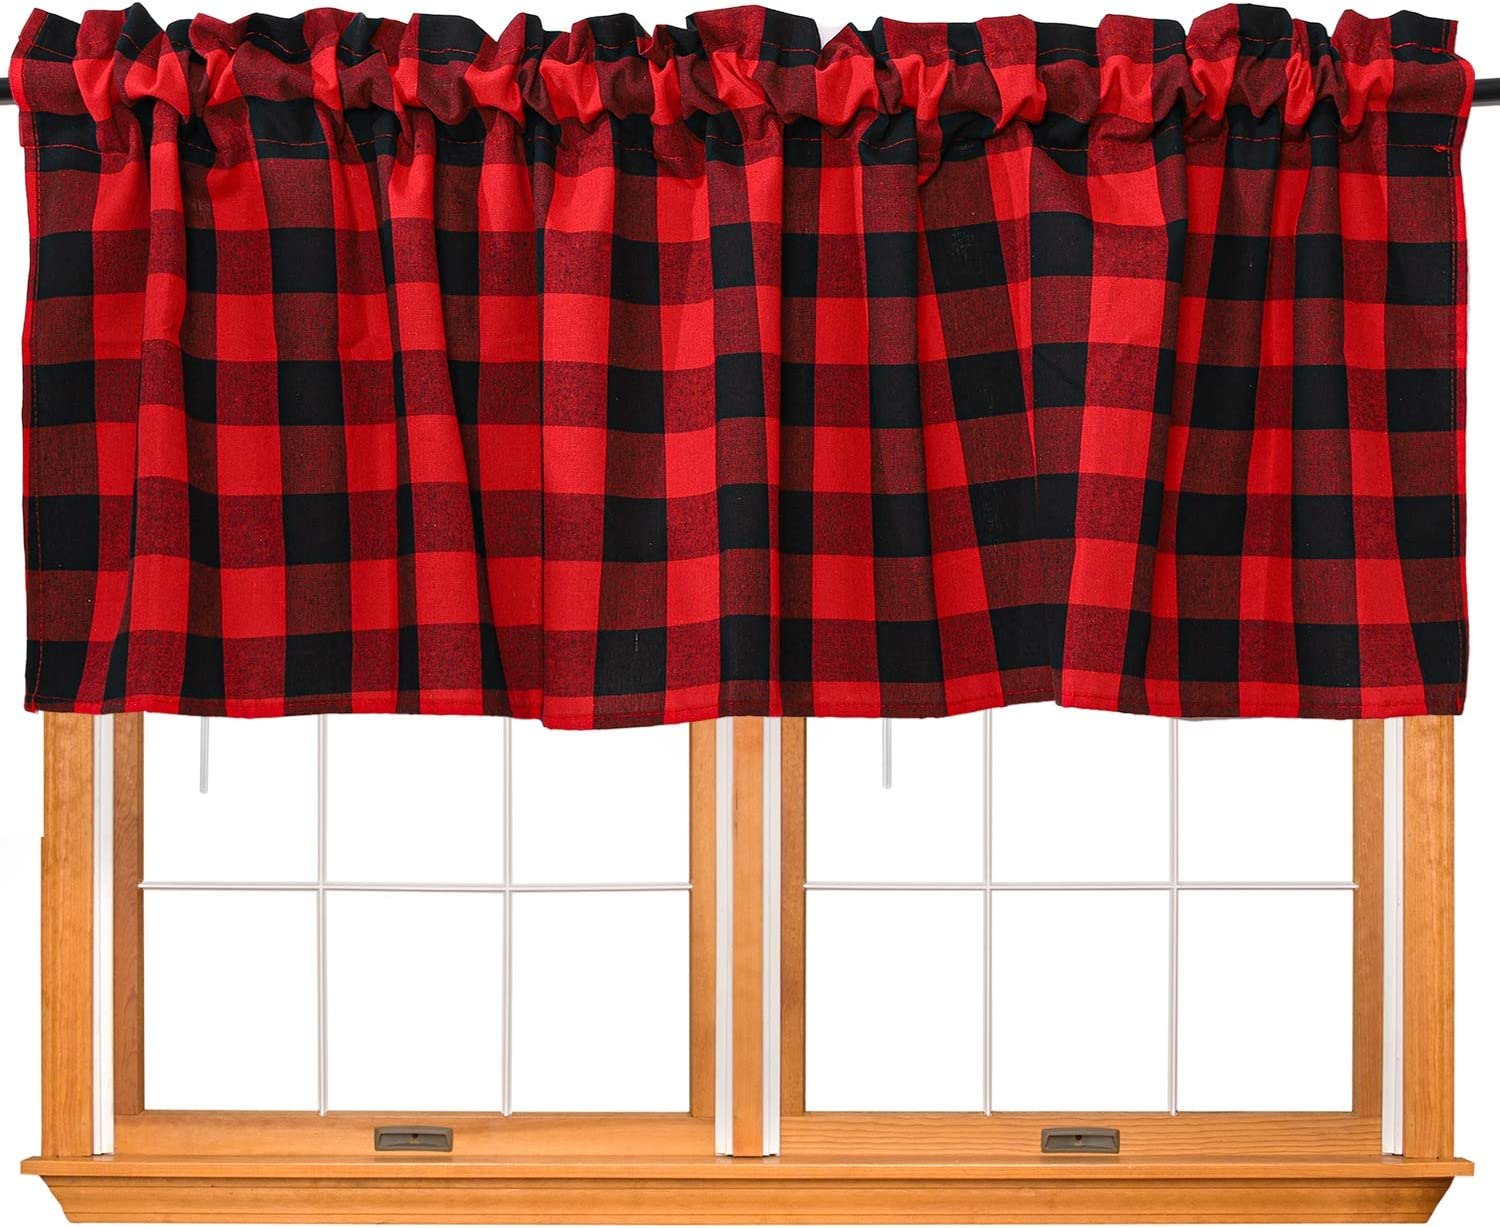 URATOT 1 Piece Buffalo Plaid Valance Red and Black Plaid Window Curtain Valance for Kitchen Buffalo Checkered Curtain Valance, 52 x 18 Inches